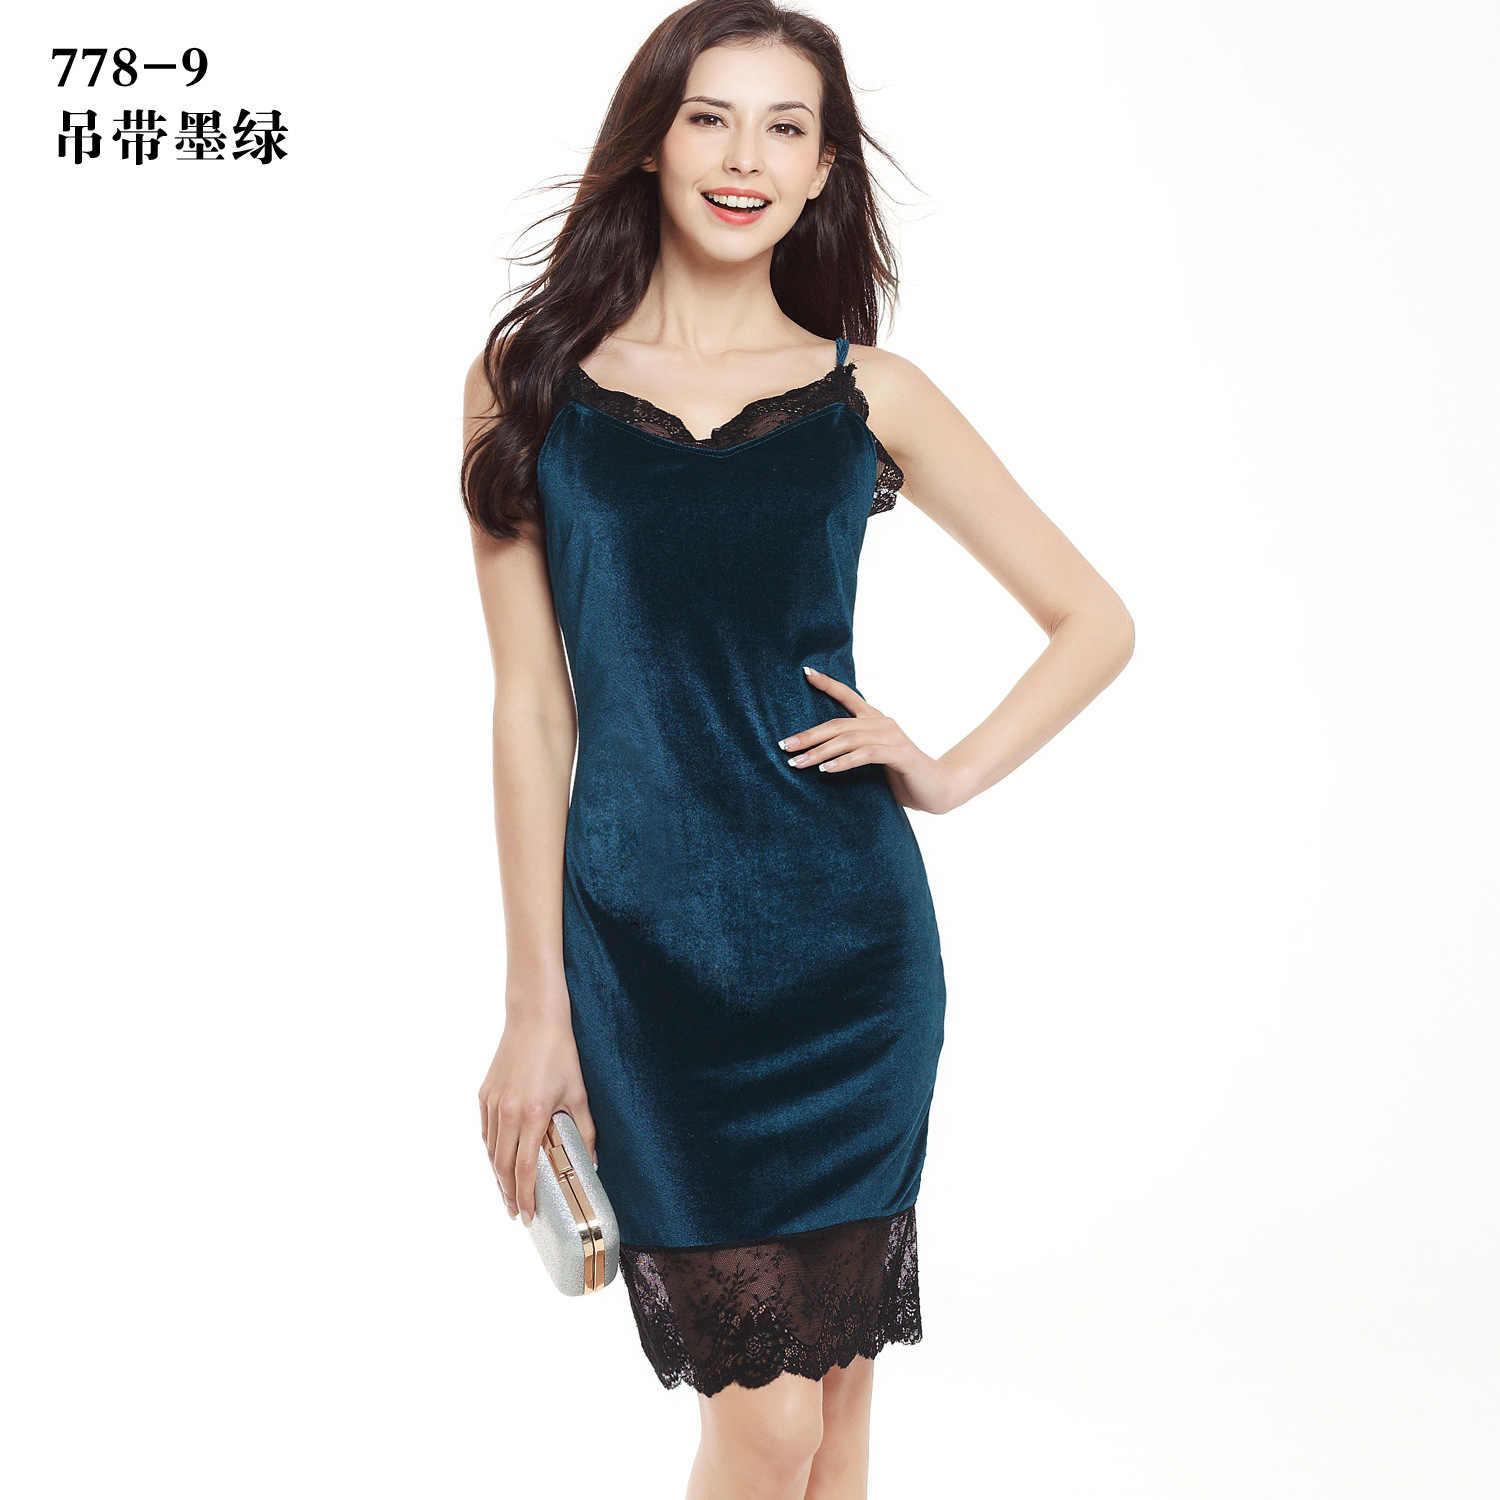 927768c51769c ... Hot sale women dresses new arrival sexy lace stitching swan gold velvet  harness dress ebay bag ...